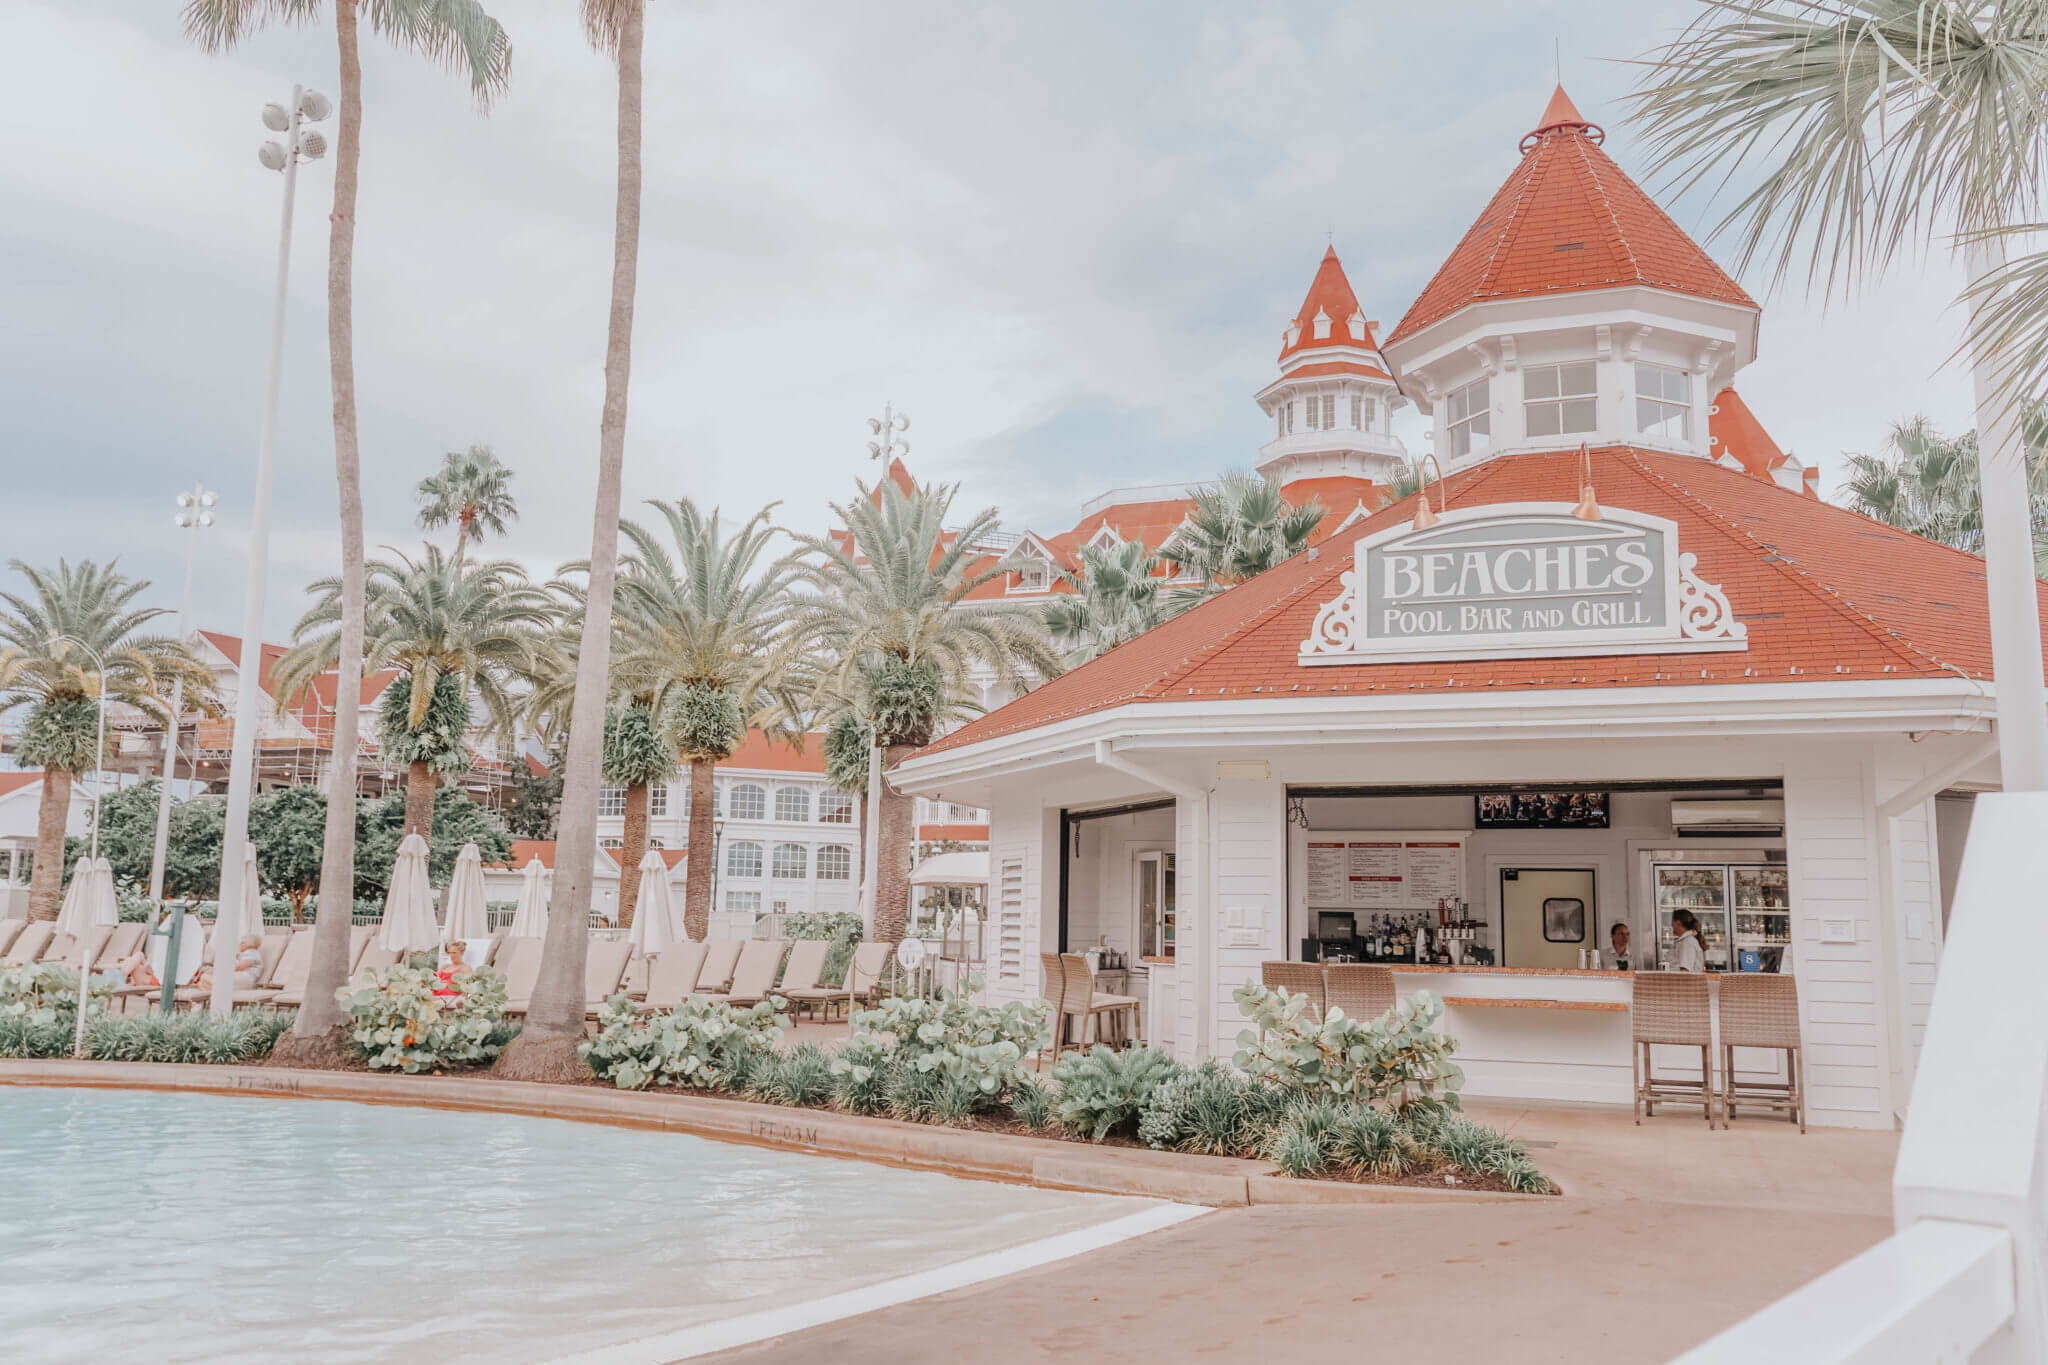 Disney World's Grand Floridian Courtyard pool with beaches pool bar and grill